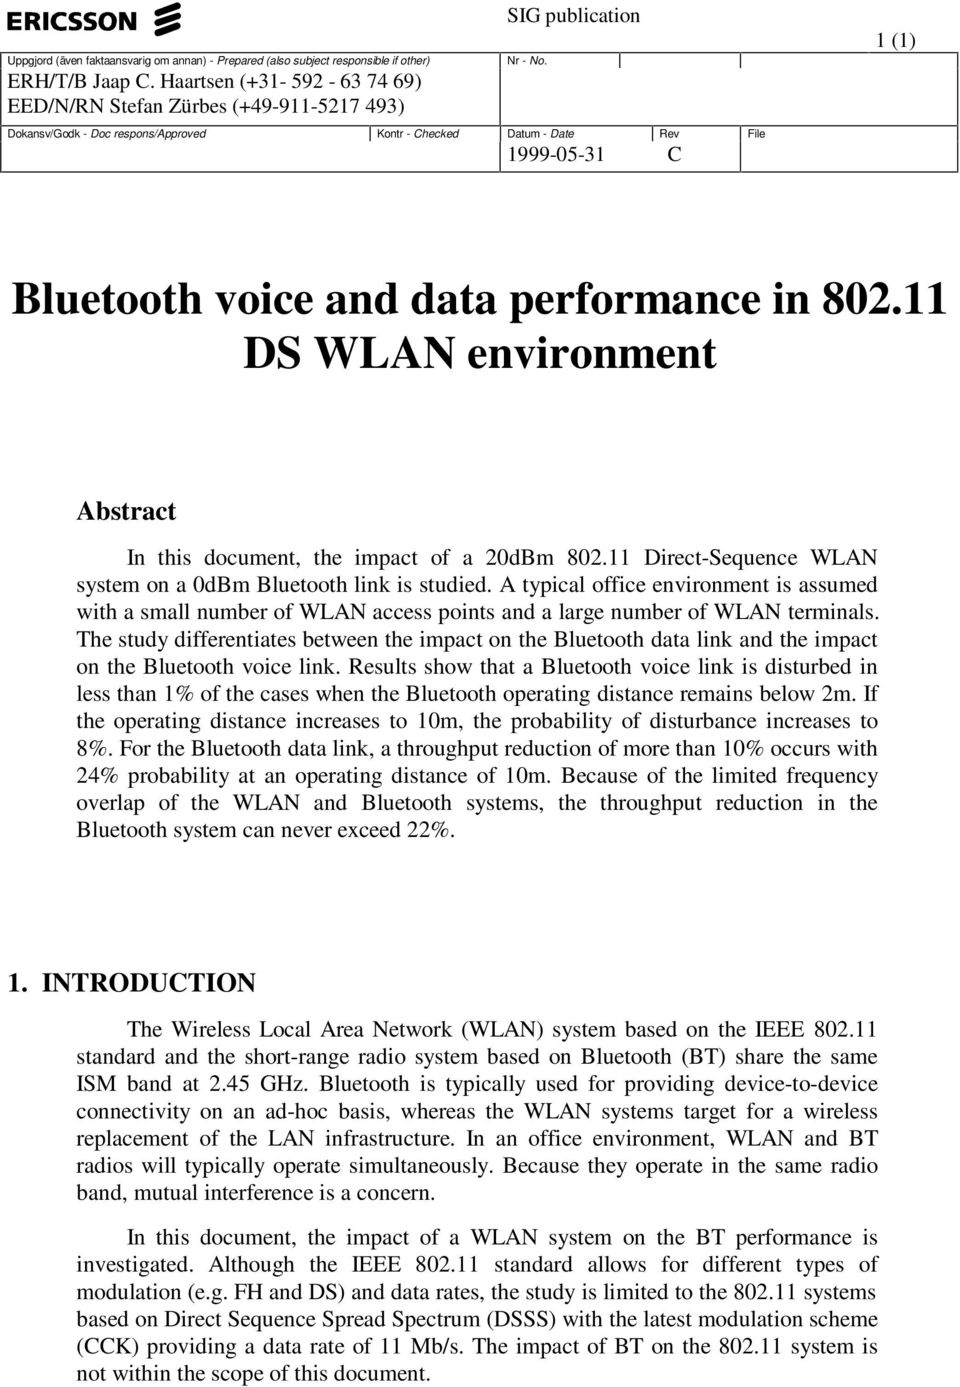 The study differentiates between the impact on the Bluetooth data link and the impact on the Bluetooth voice link.